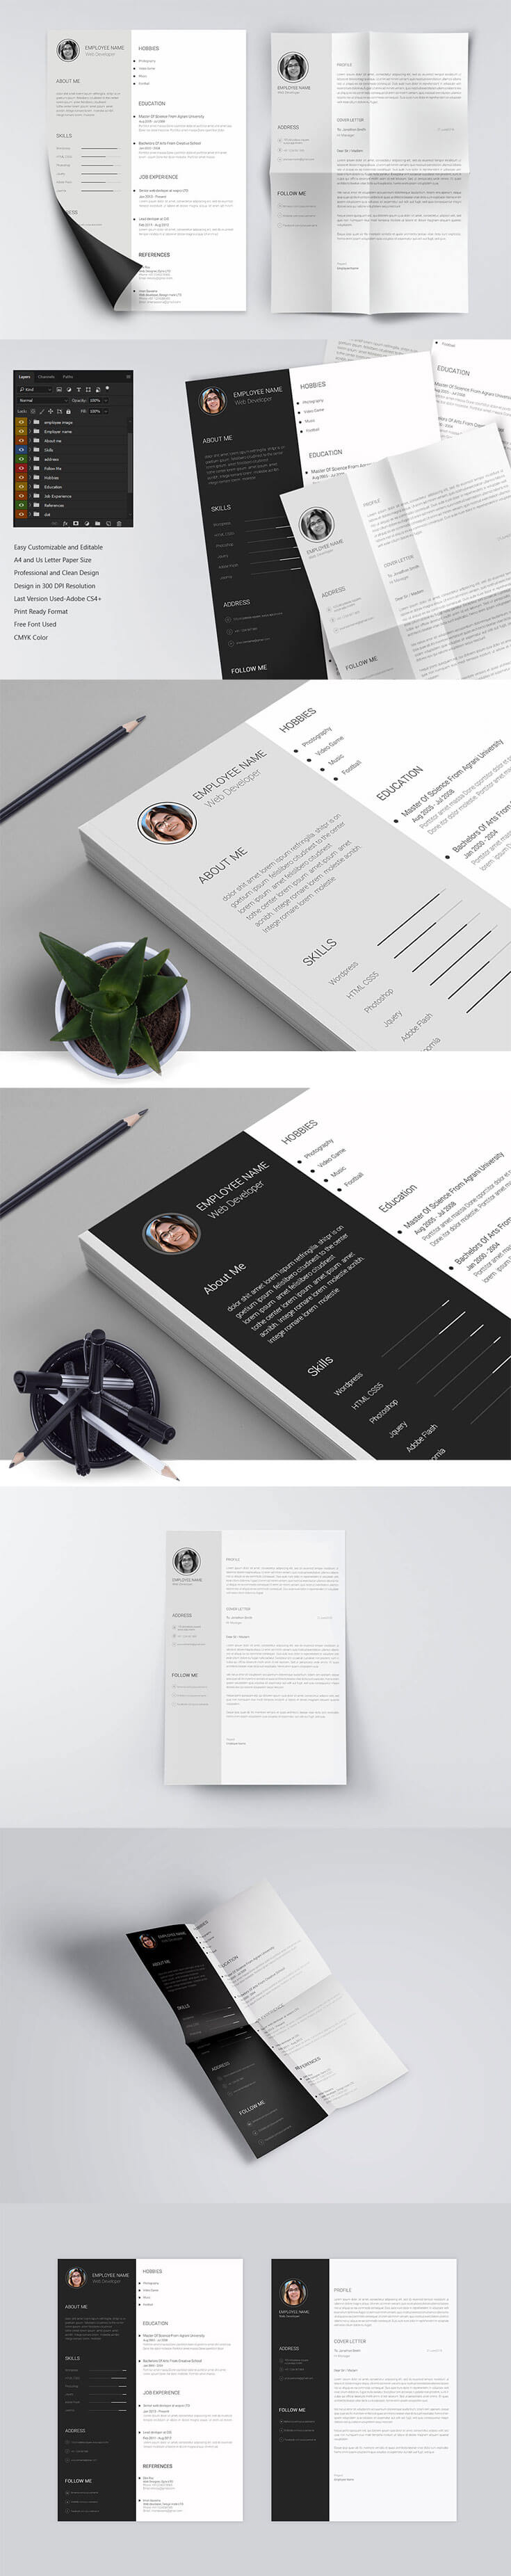 Free Minimo #Minimal #Resume PSD #Template is a clean and simple creative resume template to get your dream job. It is available in PSD file format, so easy to customize to give it your own unique personal touch.